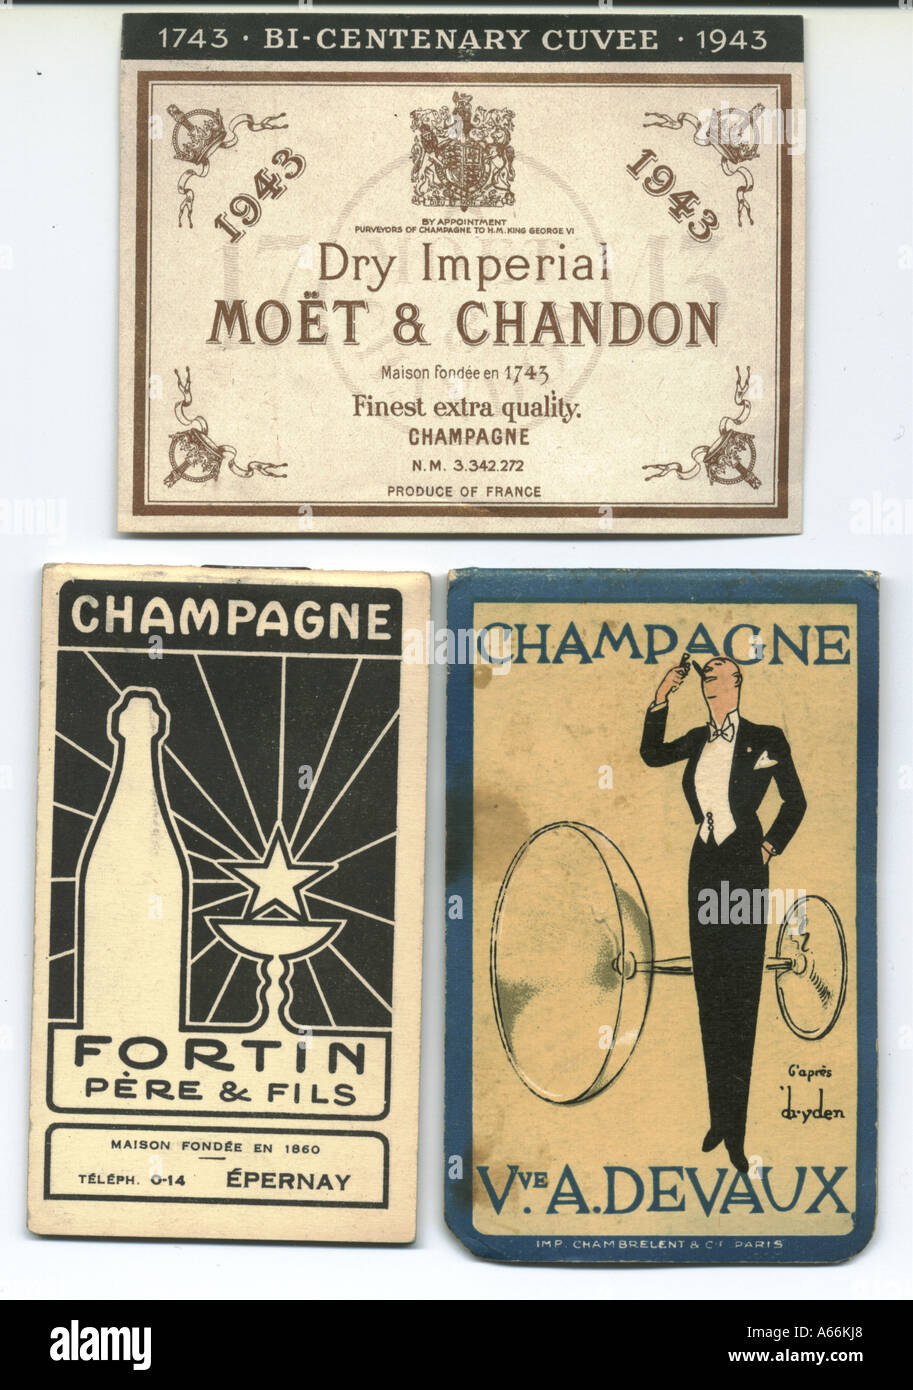 Champagne label 1943 (bi-centenary cuvee) and two give away note books advertising champagne - Stock Image